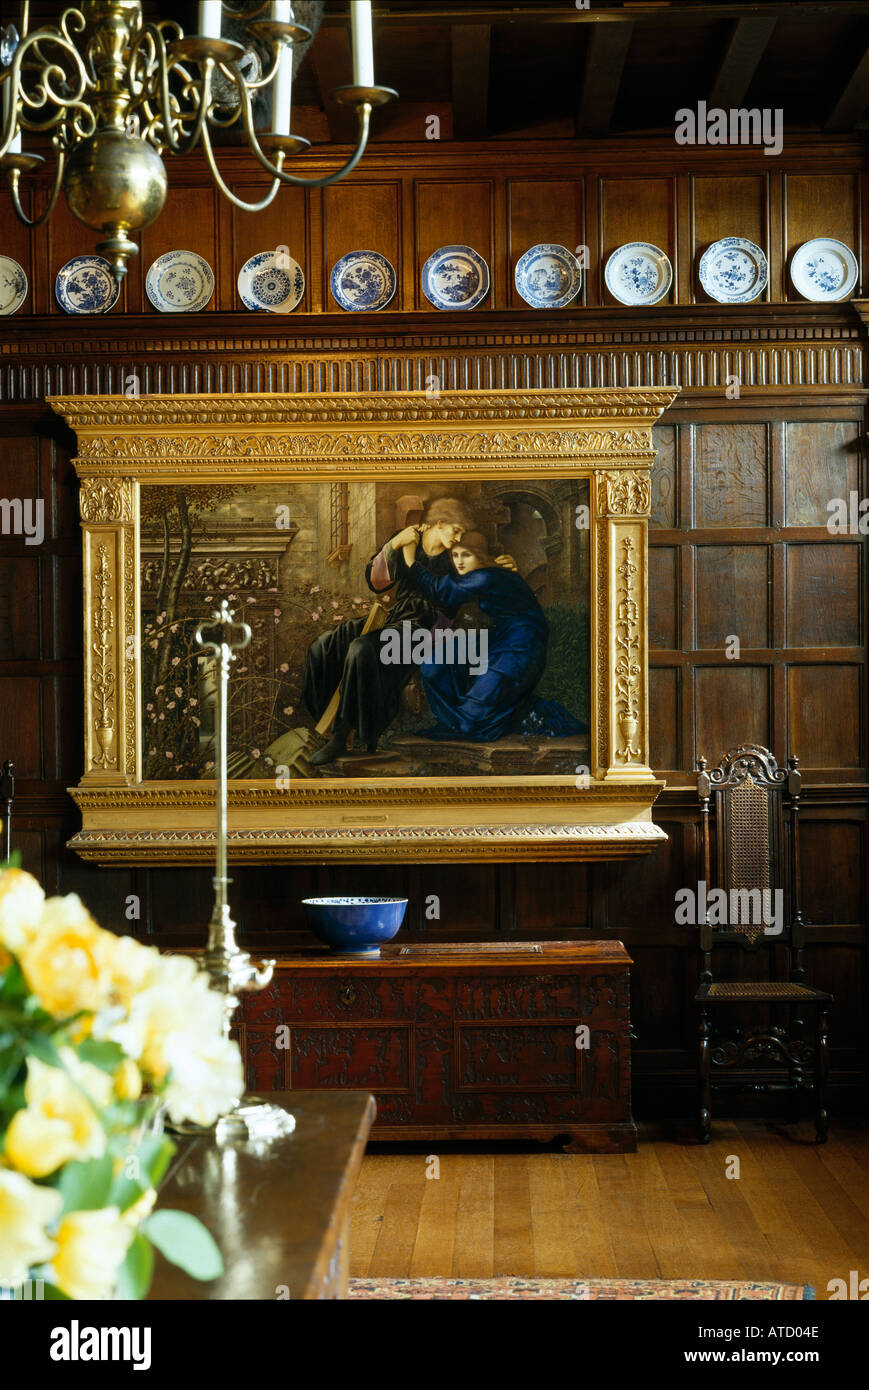 "Wightwick Manor, Wolverhampton, West Midlands, 1887-1893. ""Love among the ruins"" by Edward Burne-Jones in the Great Parlour. - Stock Image"